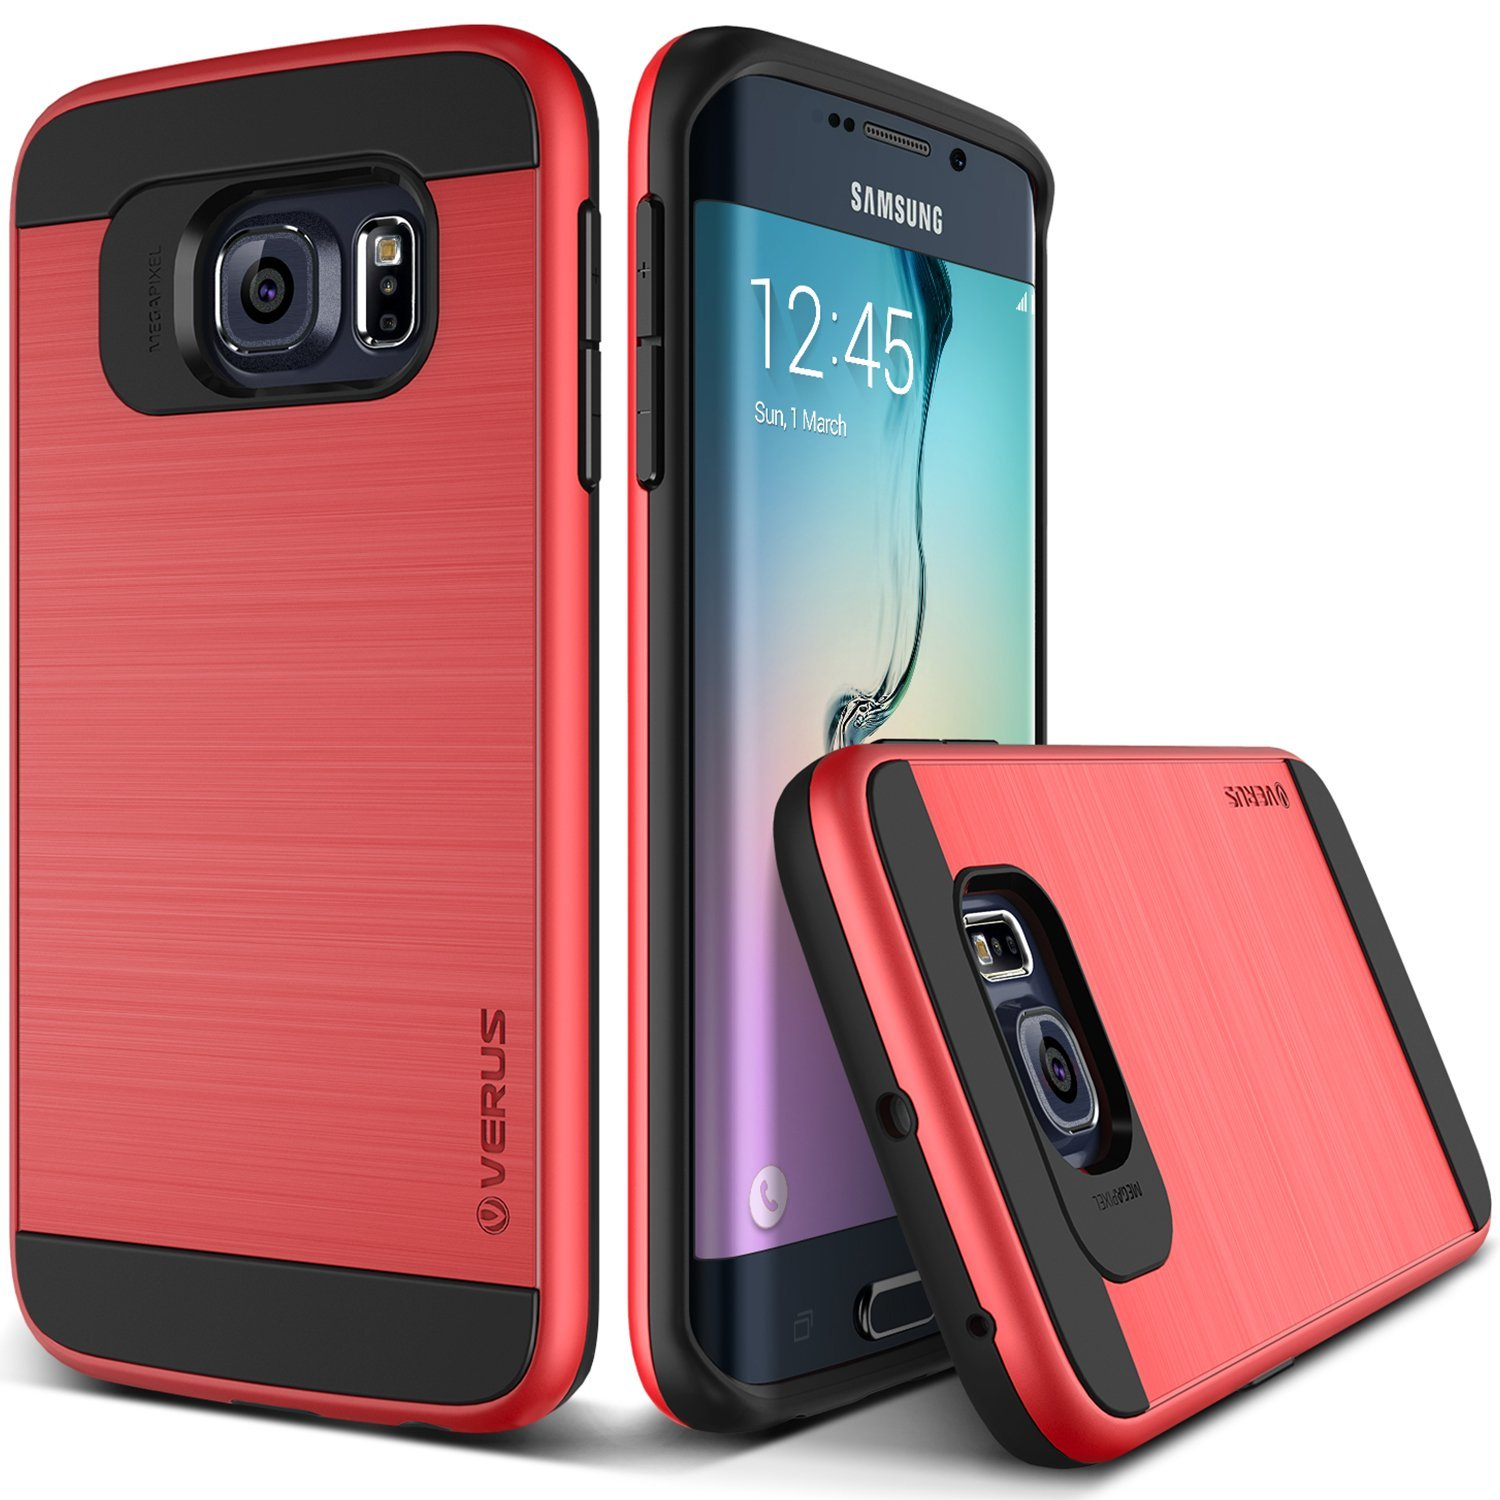 Best Samsung Galaxy S6 Edge Cases For Style Protection Android Case Note 9 Spigen Modern Slim Design Neo Hybrid Casing Burgundy Verus Air Space Cushion